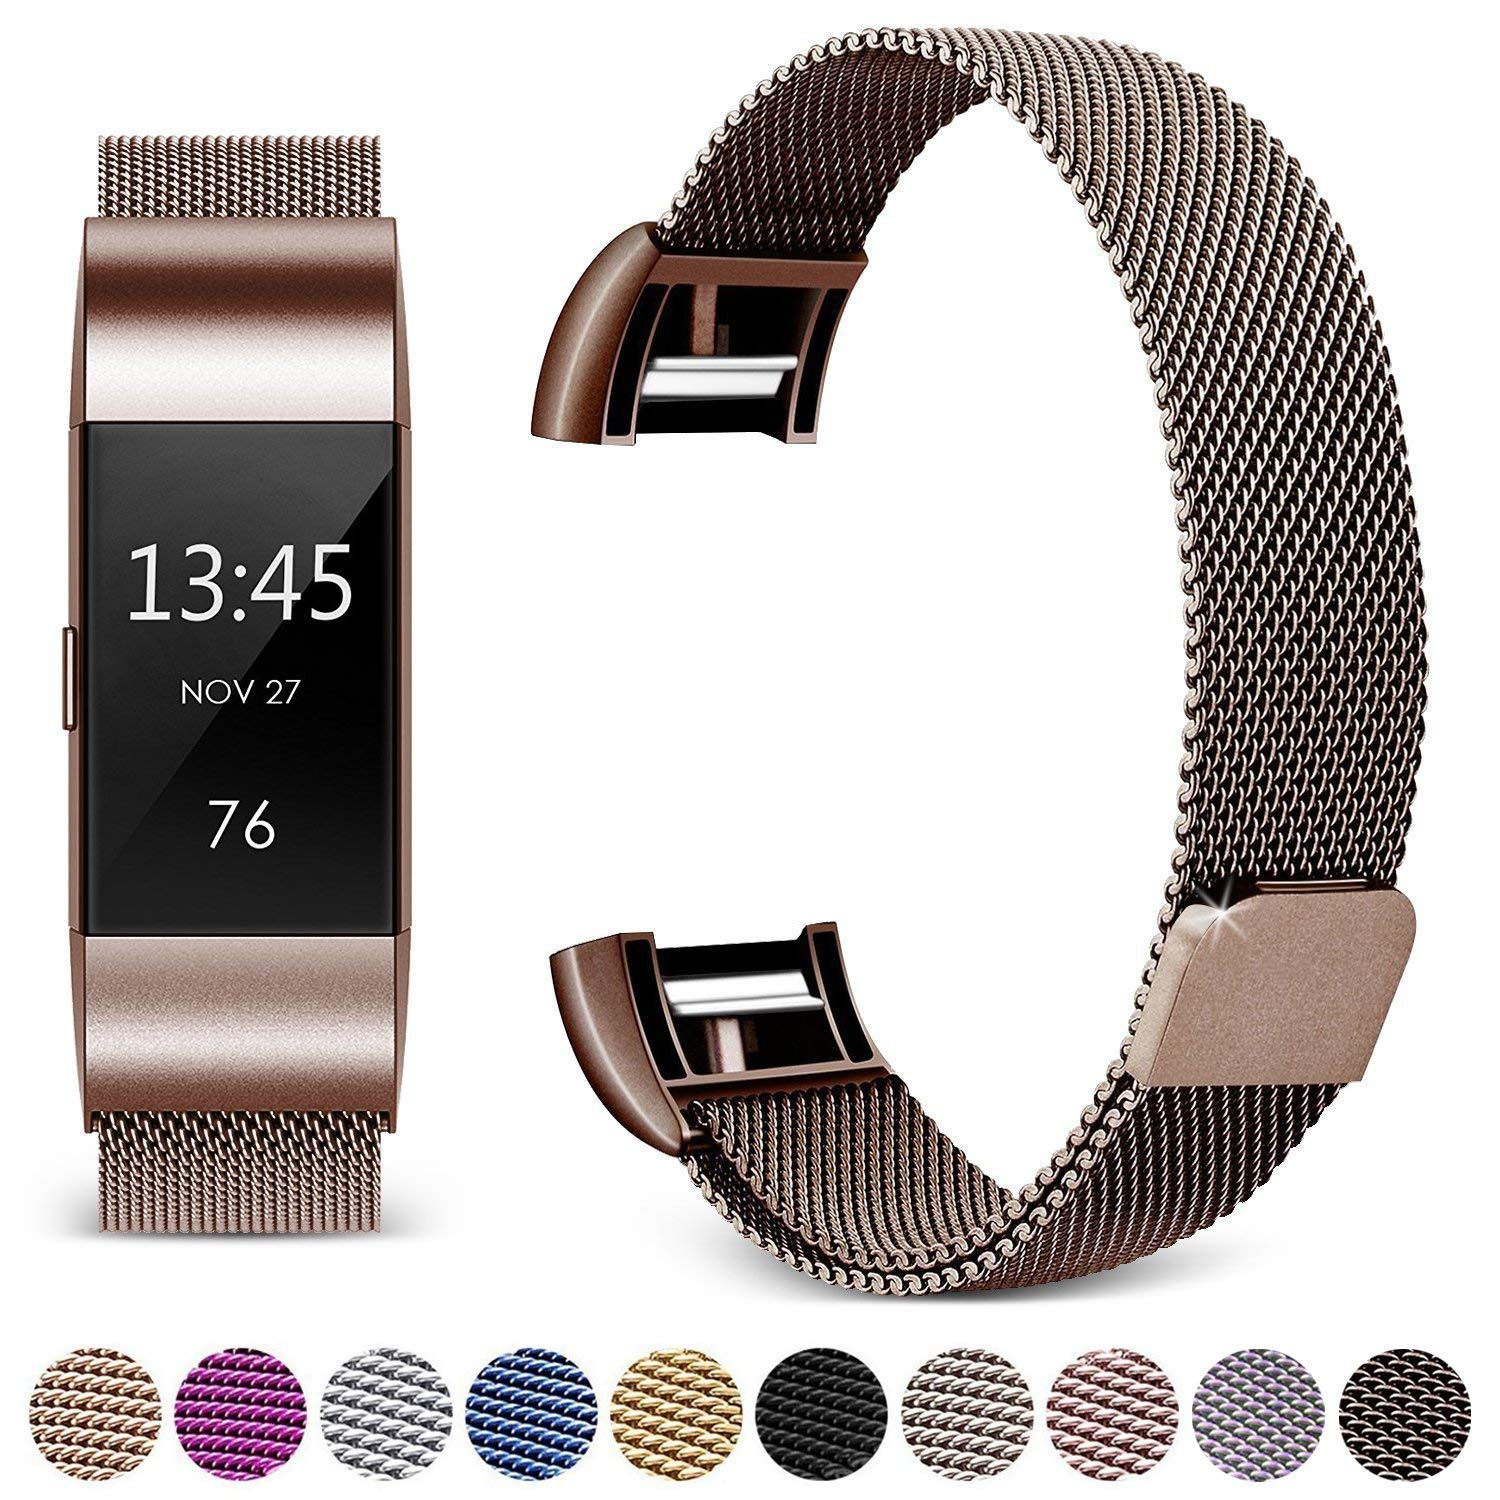 Hotodeal Band Compatible Fitbit Charge 2 Bands, Band Milanese Loop Stainless Steel Magnet Metal Replacement Bracelet Strap, Wristbands Accessories Women Men Small Large